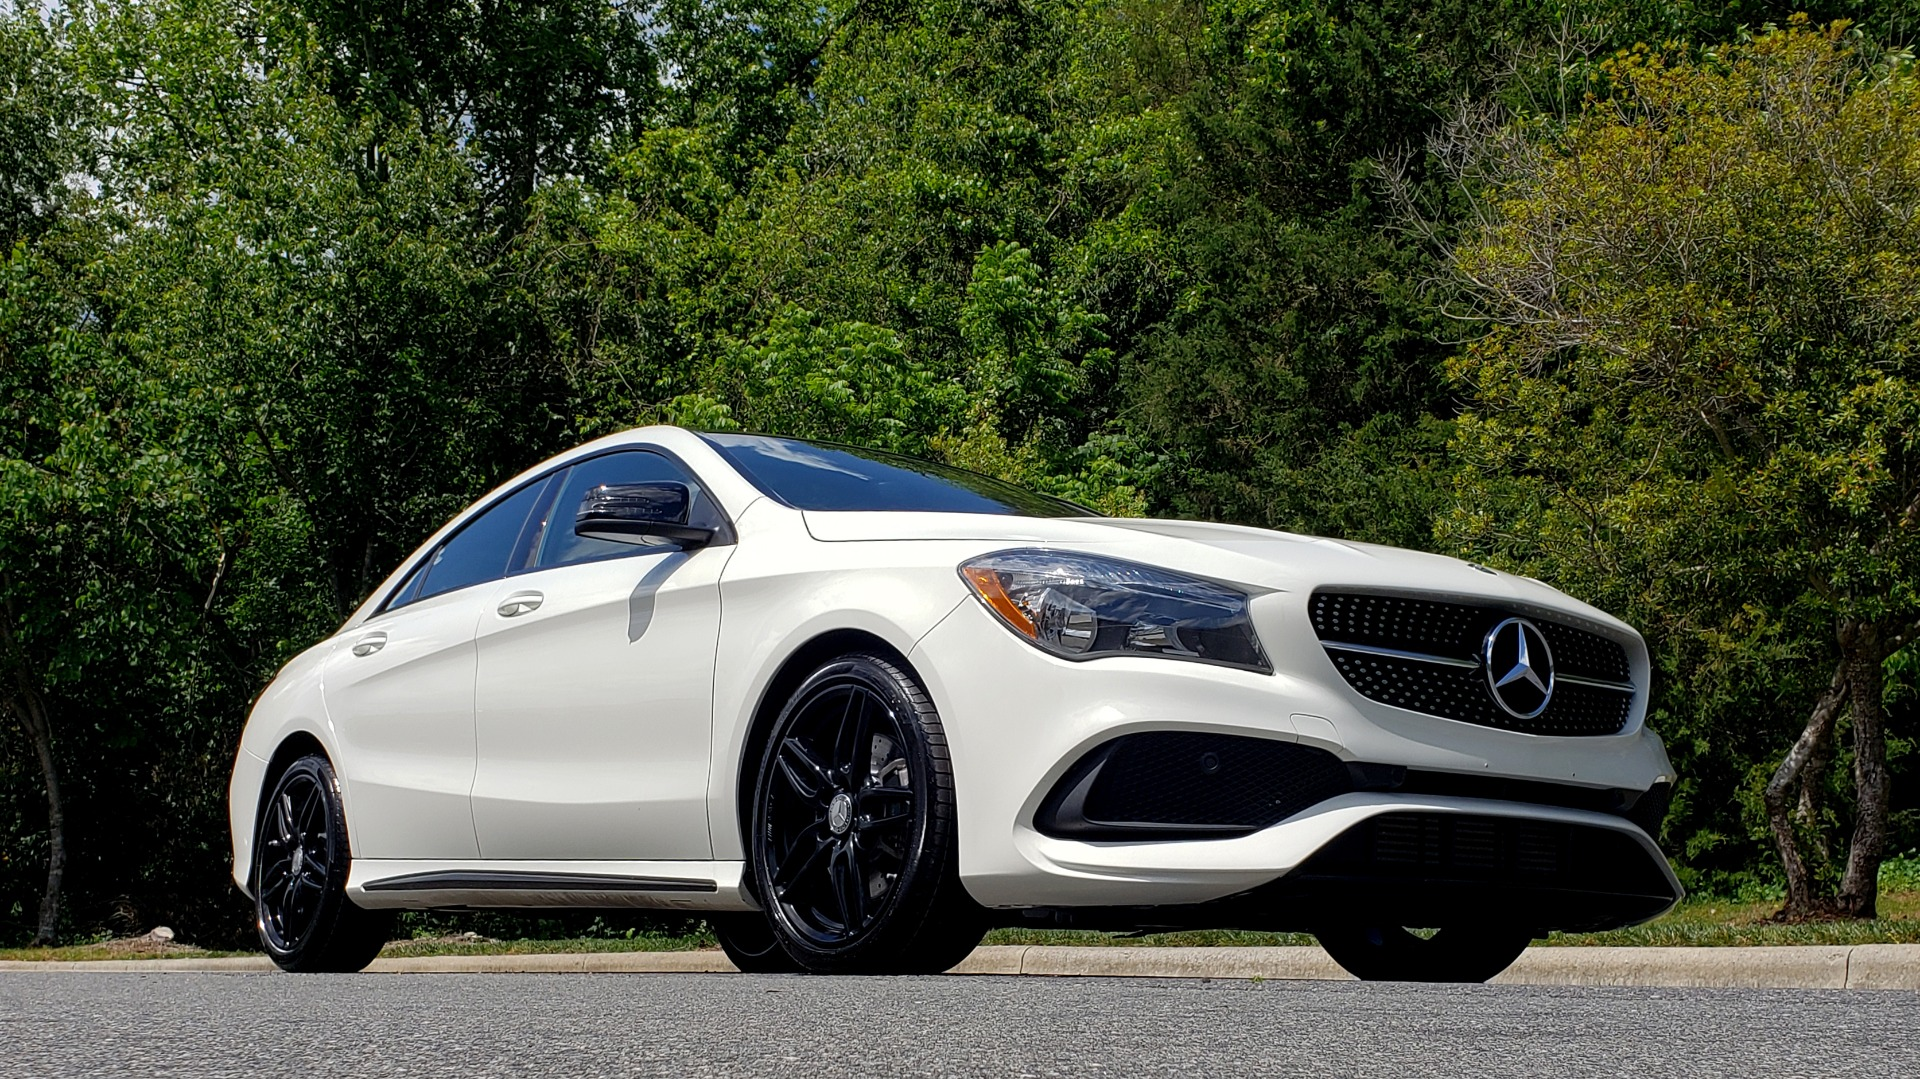 Used 2017 Mercedes-Benz CLA 250 4MATIC / SPORT / PREMIUM / MULTI MEDIA / NIGHT PKG / PANO-ROOF for sale Sold at Formula Imports in Charlotte NC 28227 5